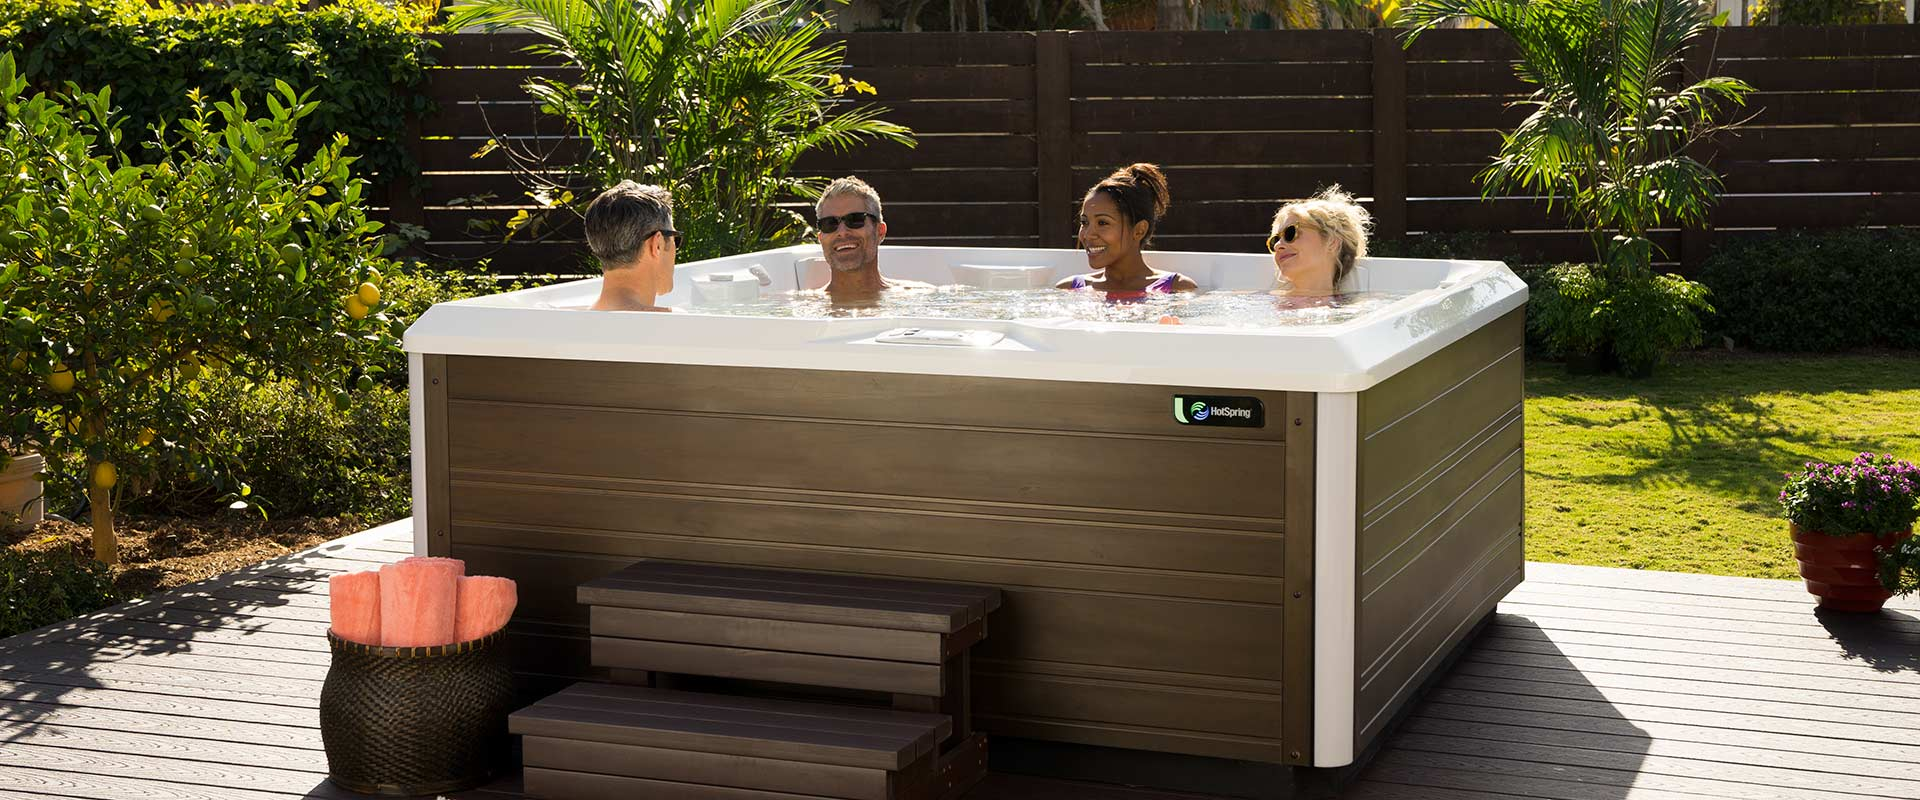 off tax hot tub jets on store banner blog the promotion